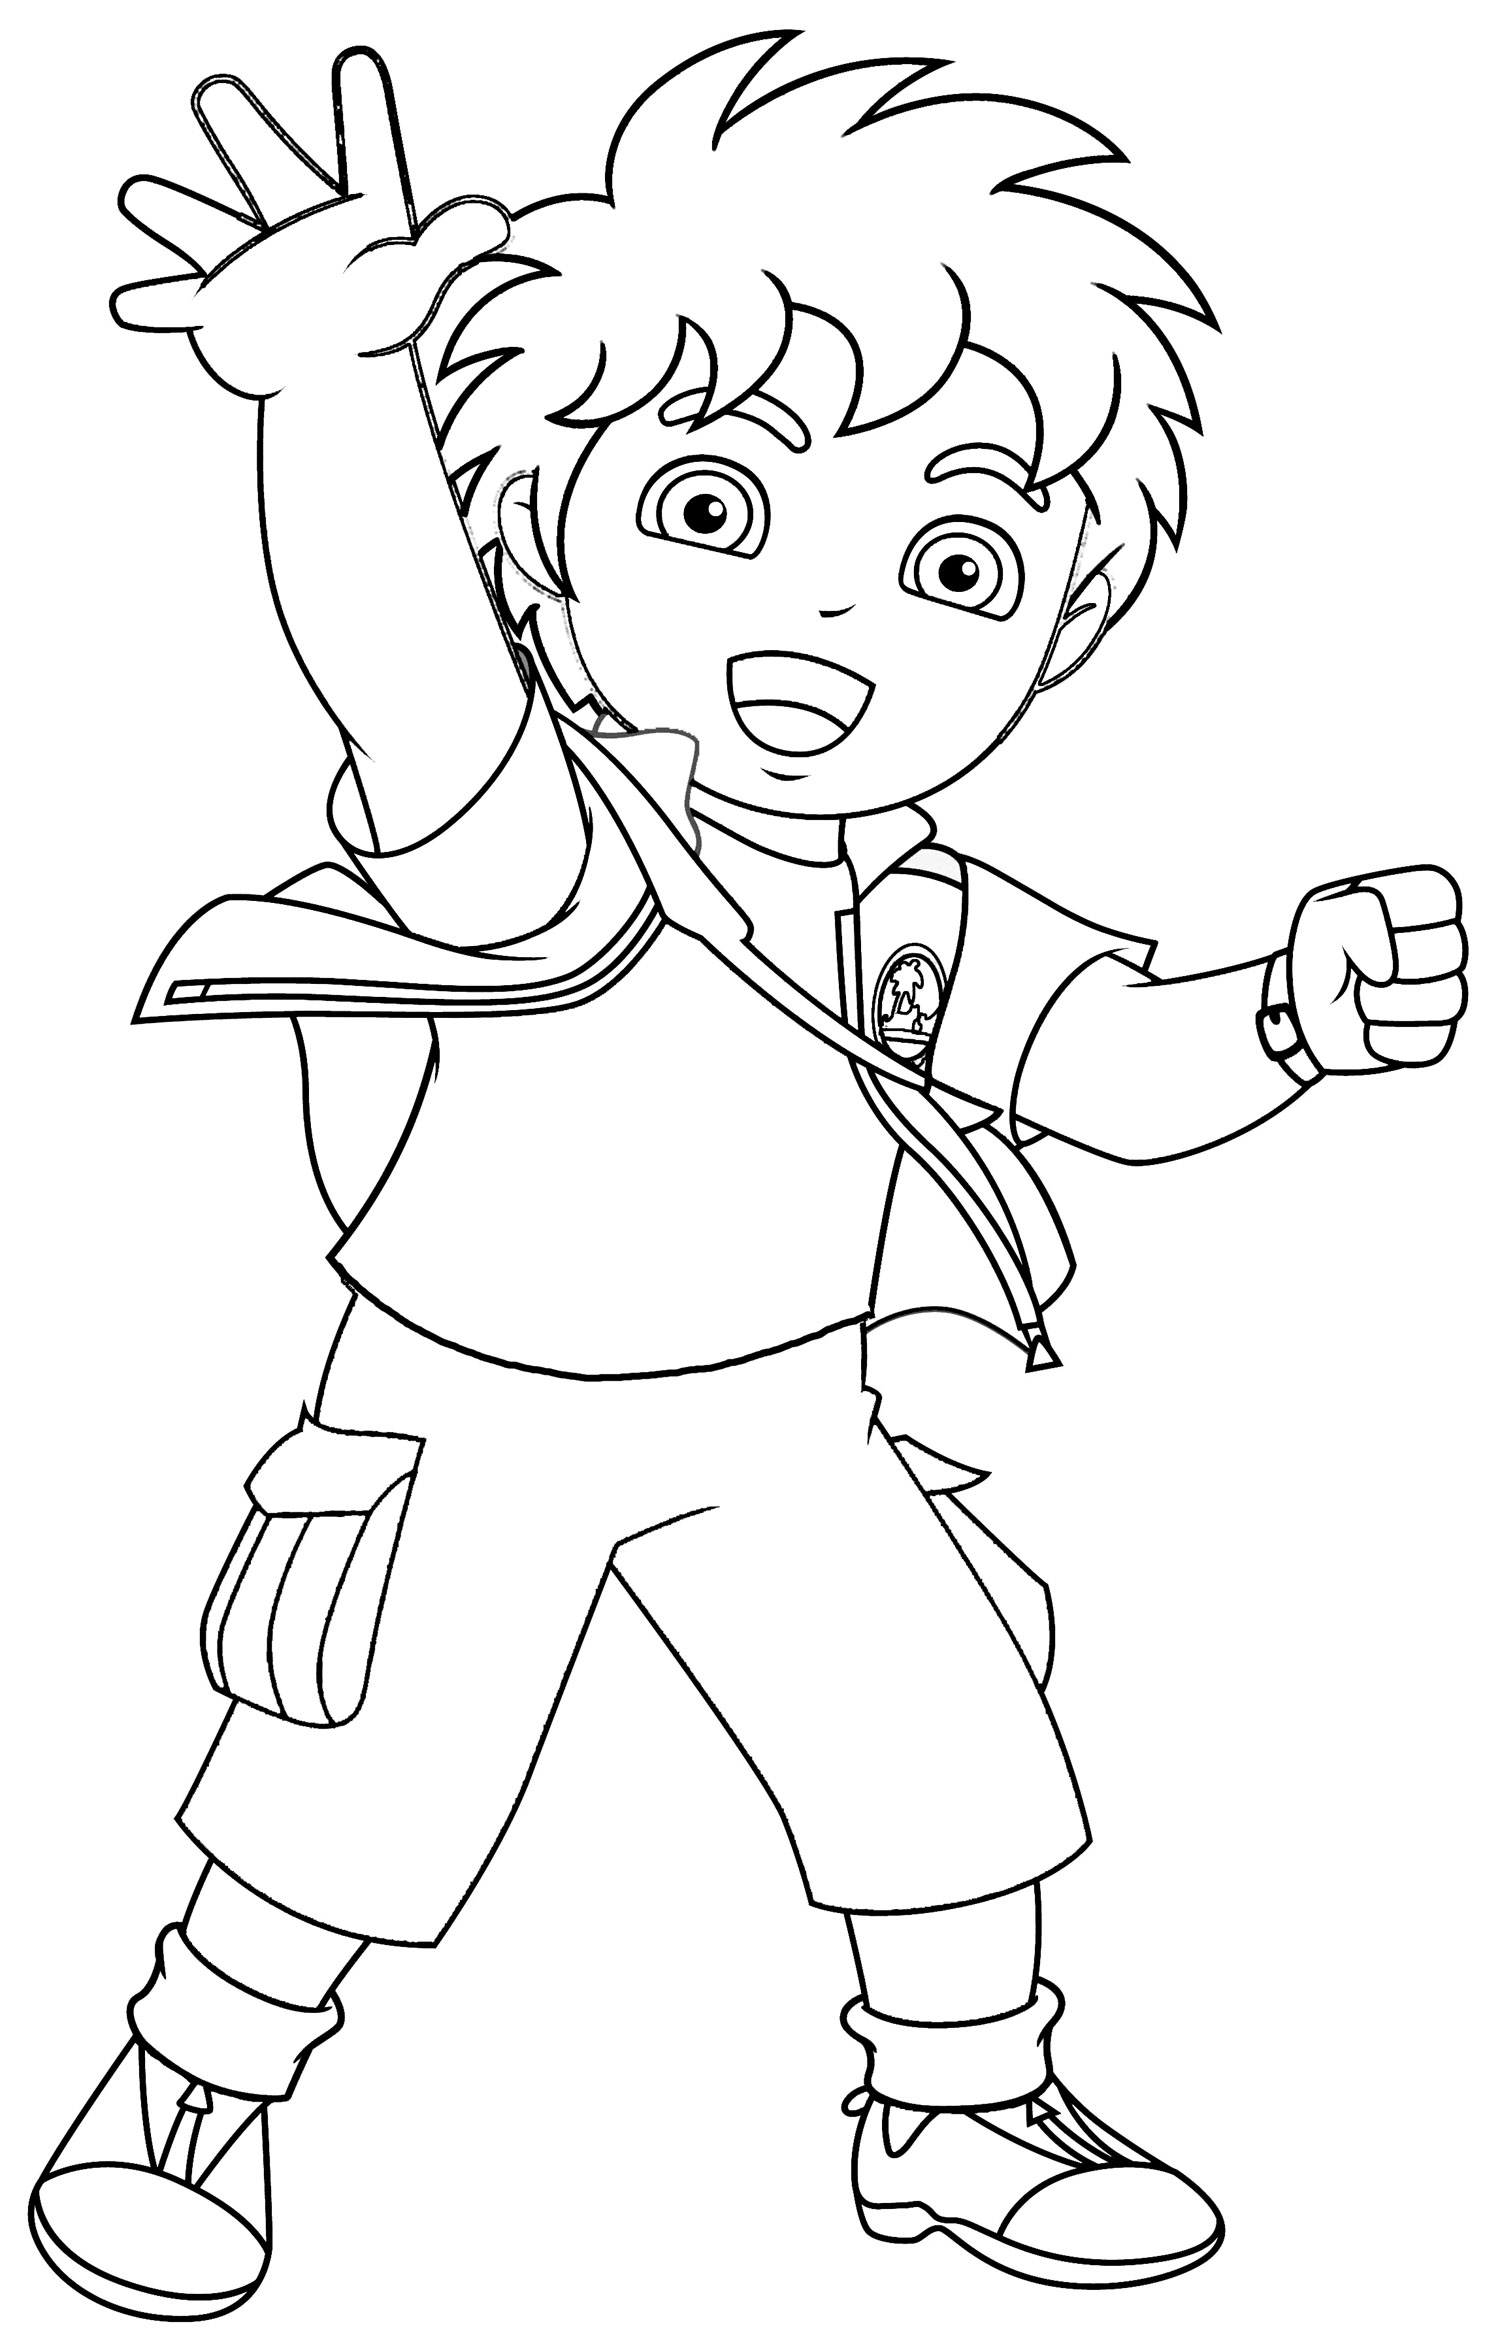 14go Coloring Page To Print